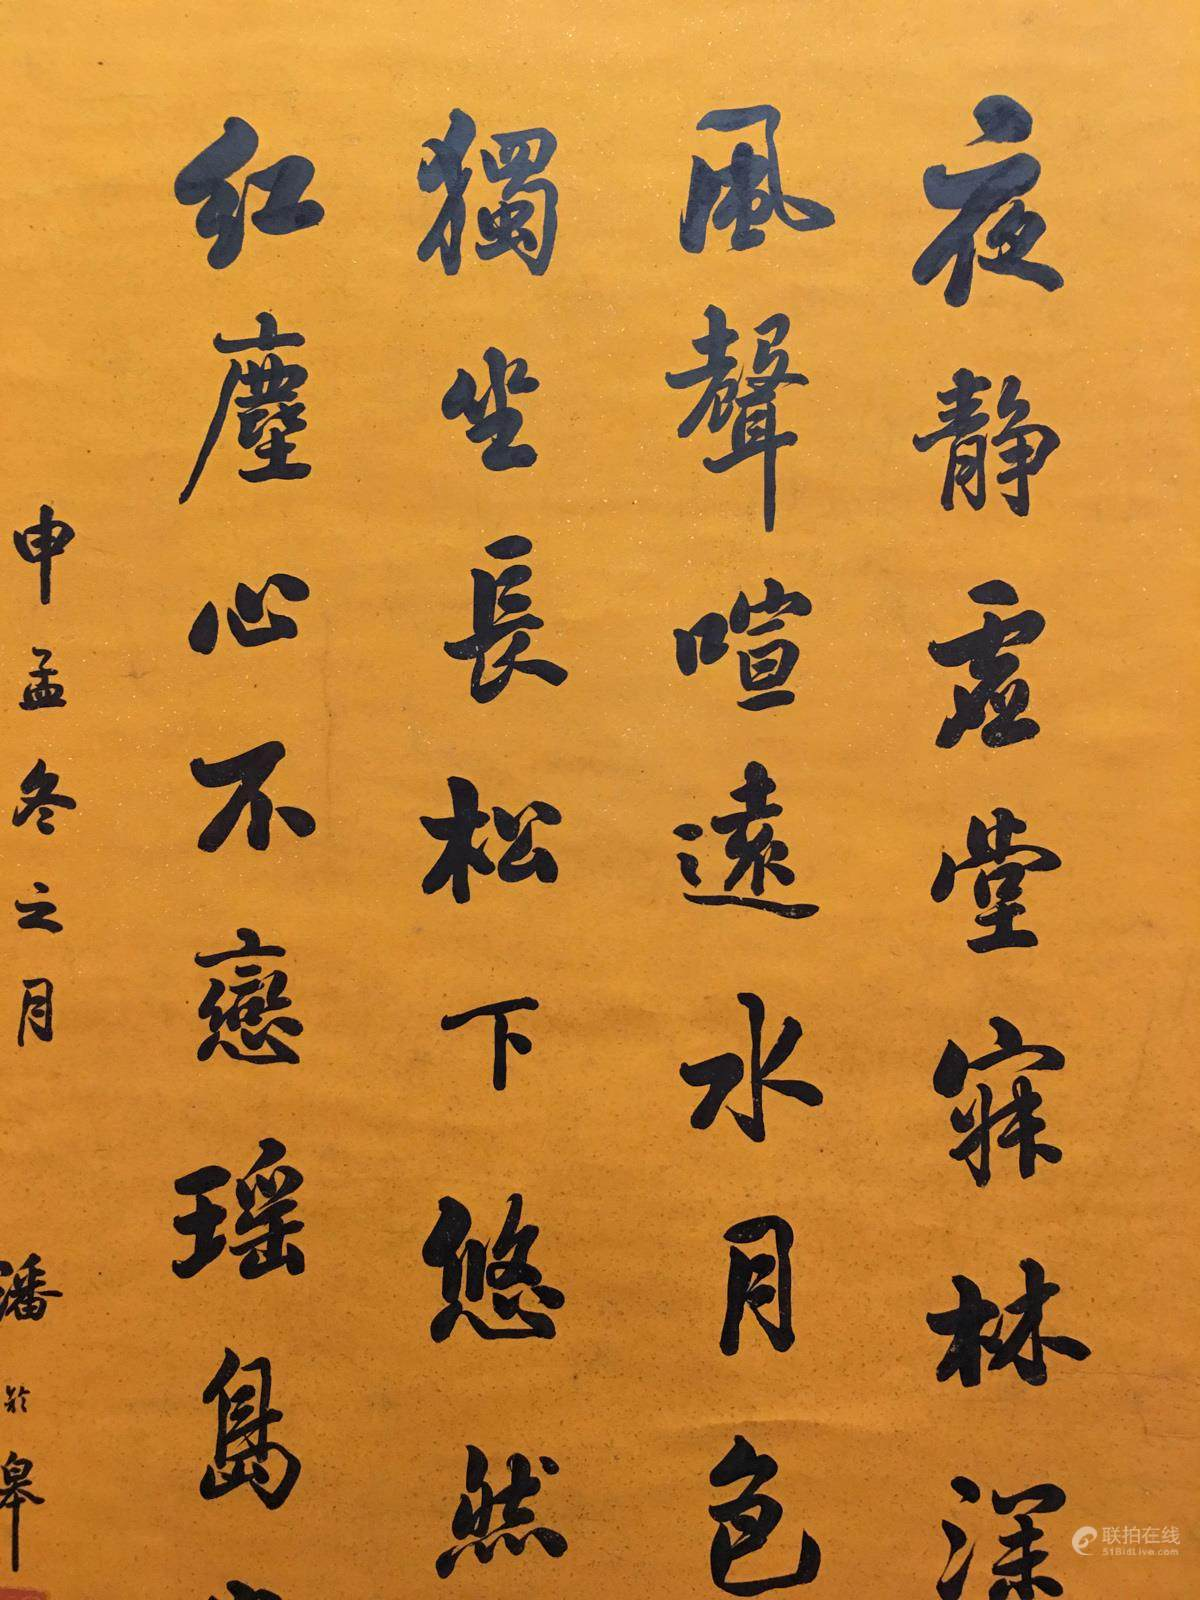 51BidLive-[Hanging Scroll of Ancient Chinese Prose with Pan